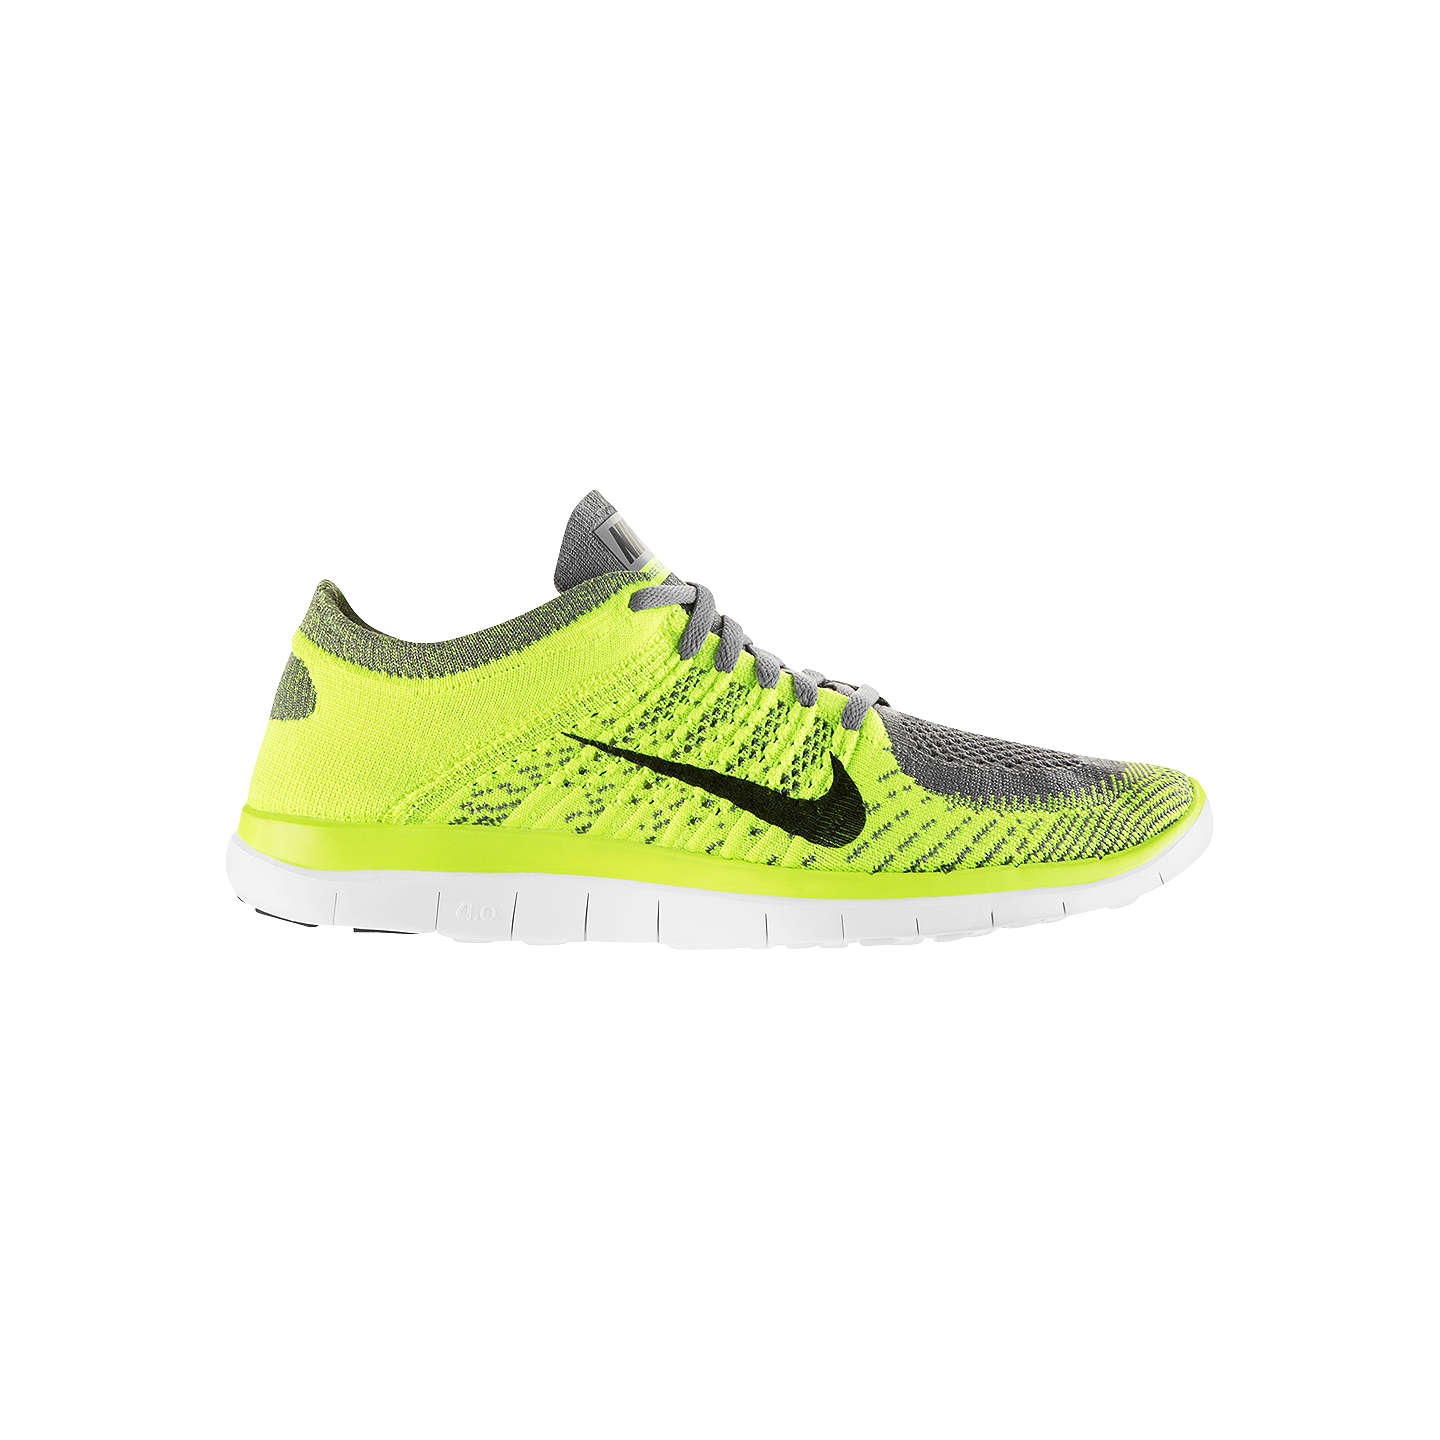 6210fa03d6c4 nike free run 4.0 mens yellow grey